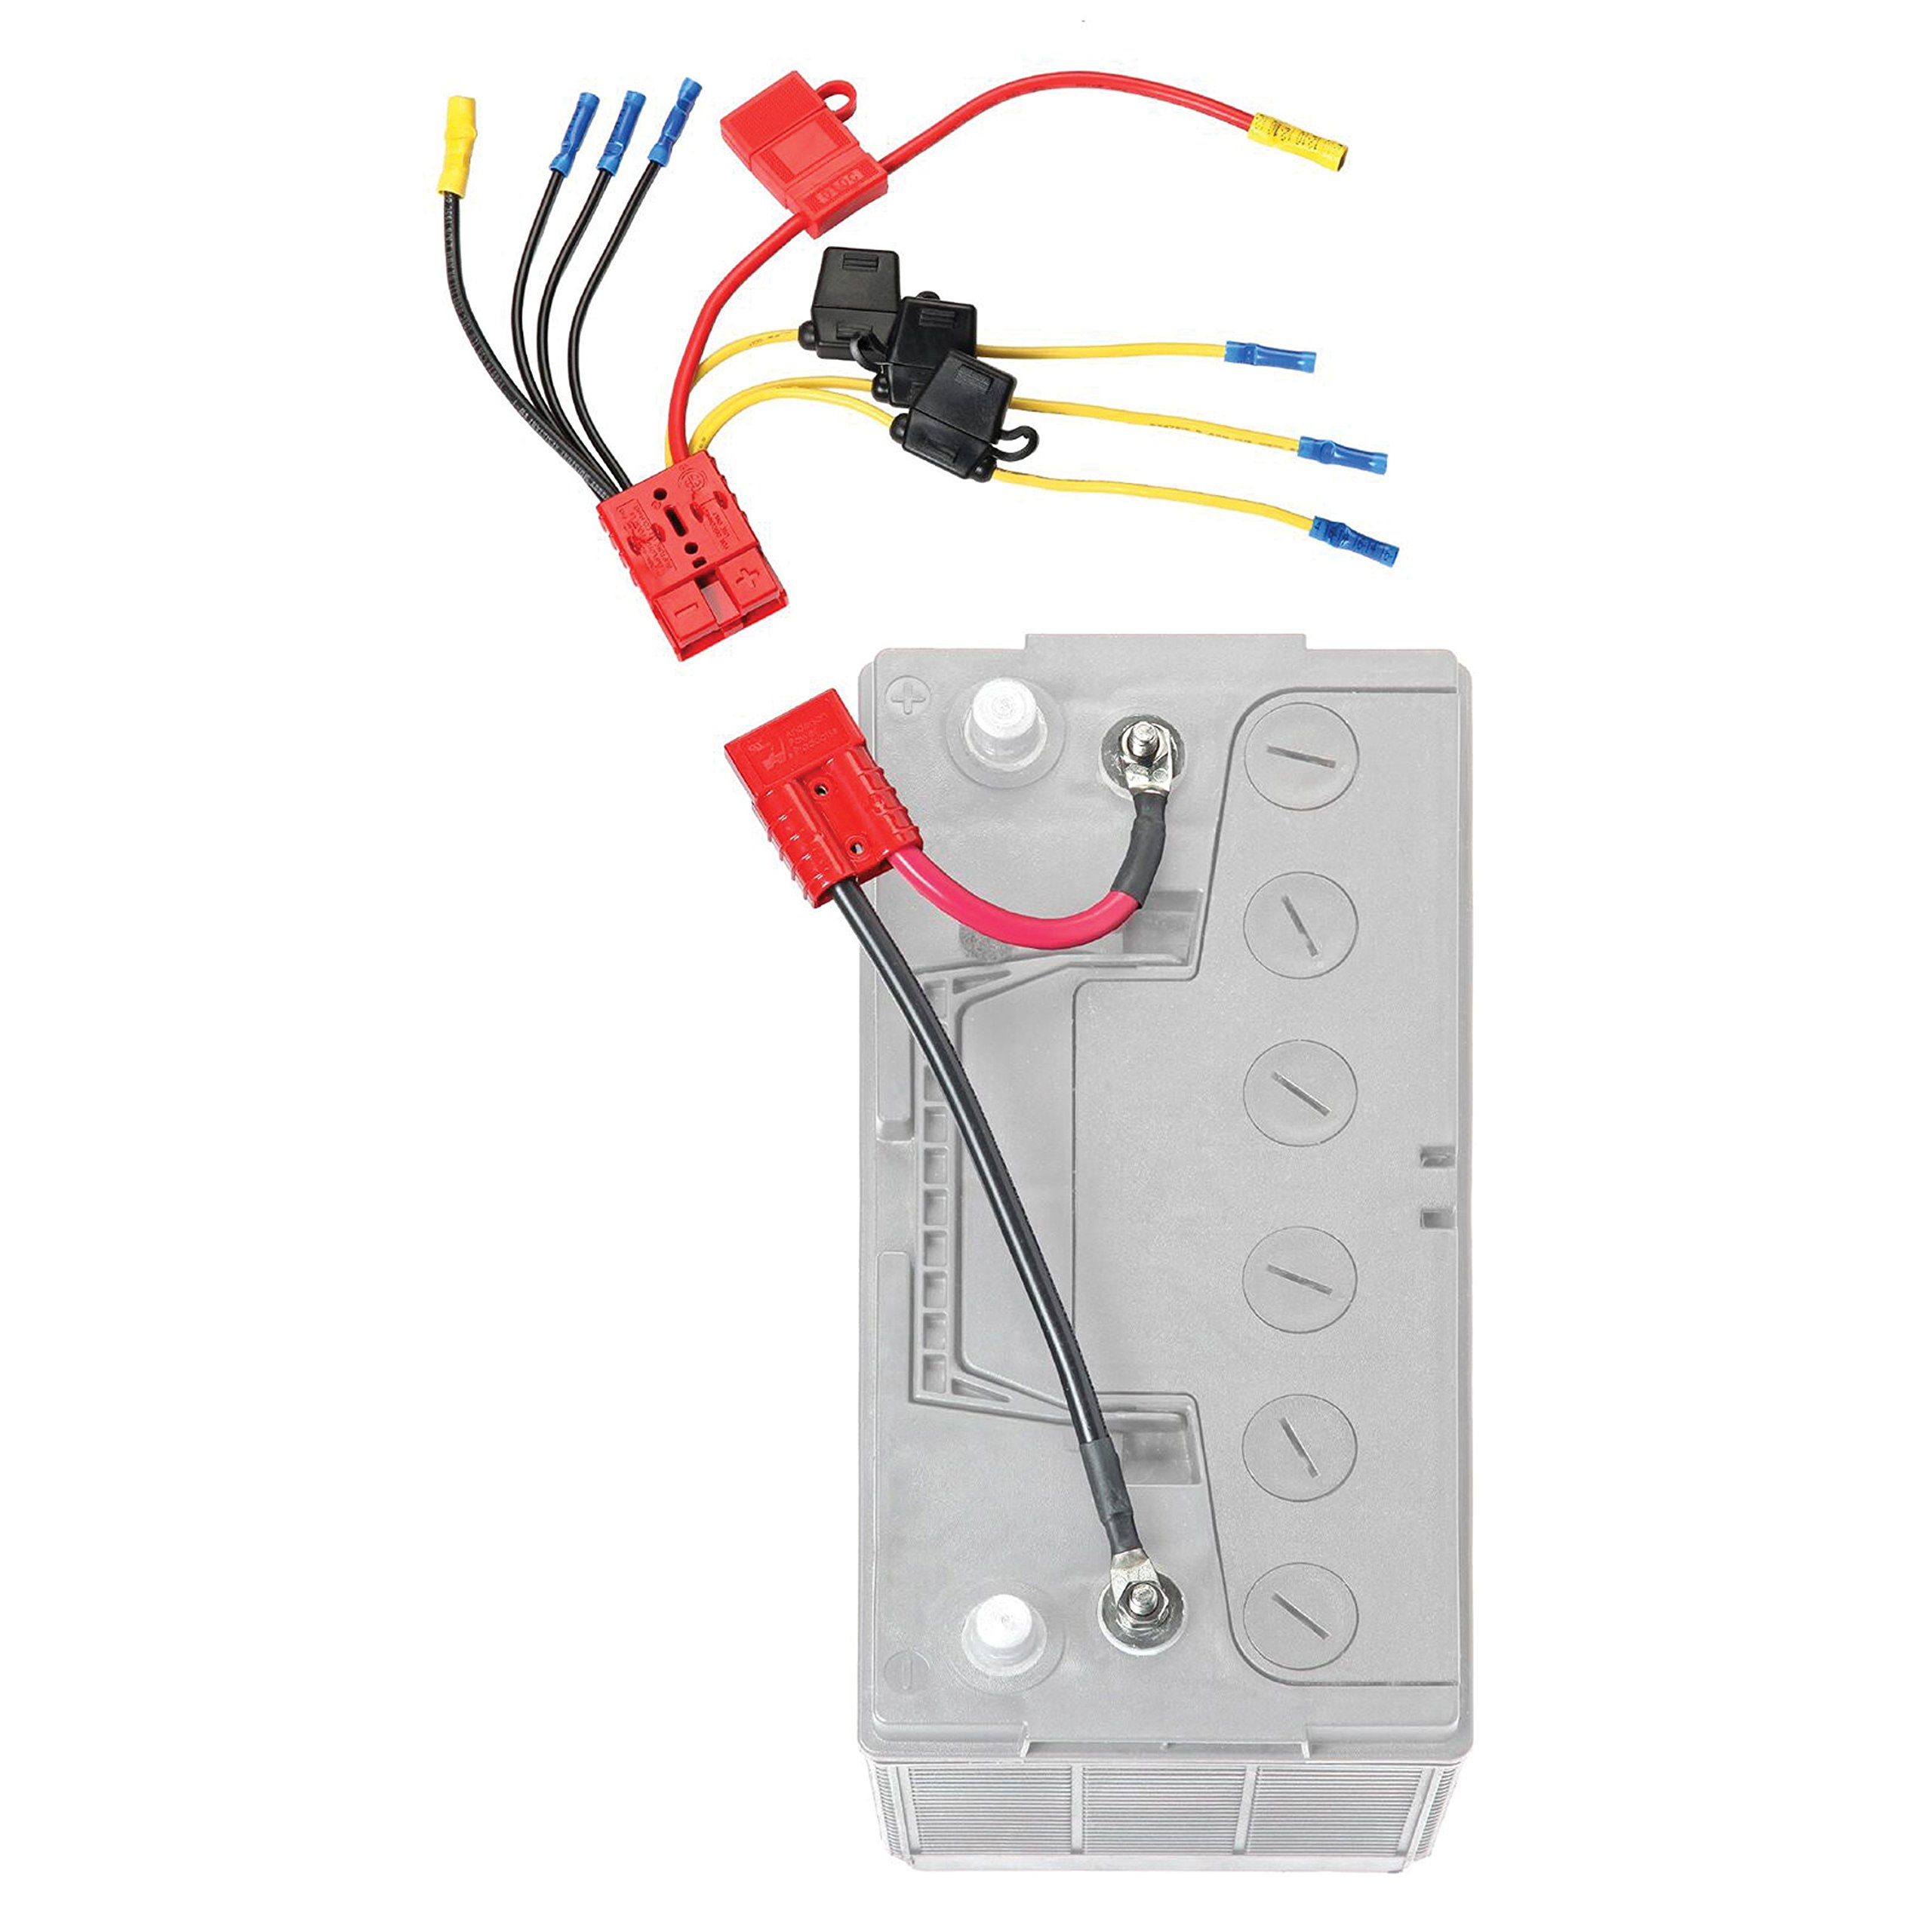 Connect-Ease RCE12VB4FK Easy 4 Lead Fused Device Connection Kit-Clam Pack